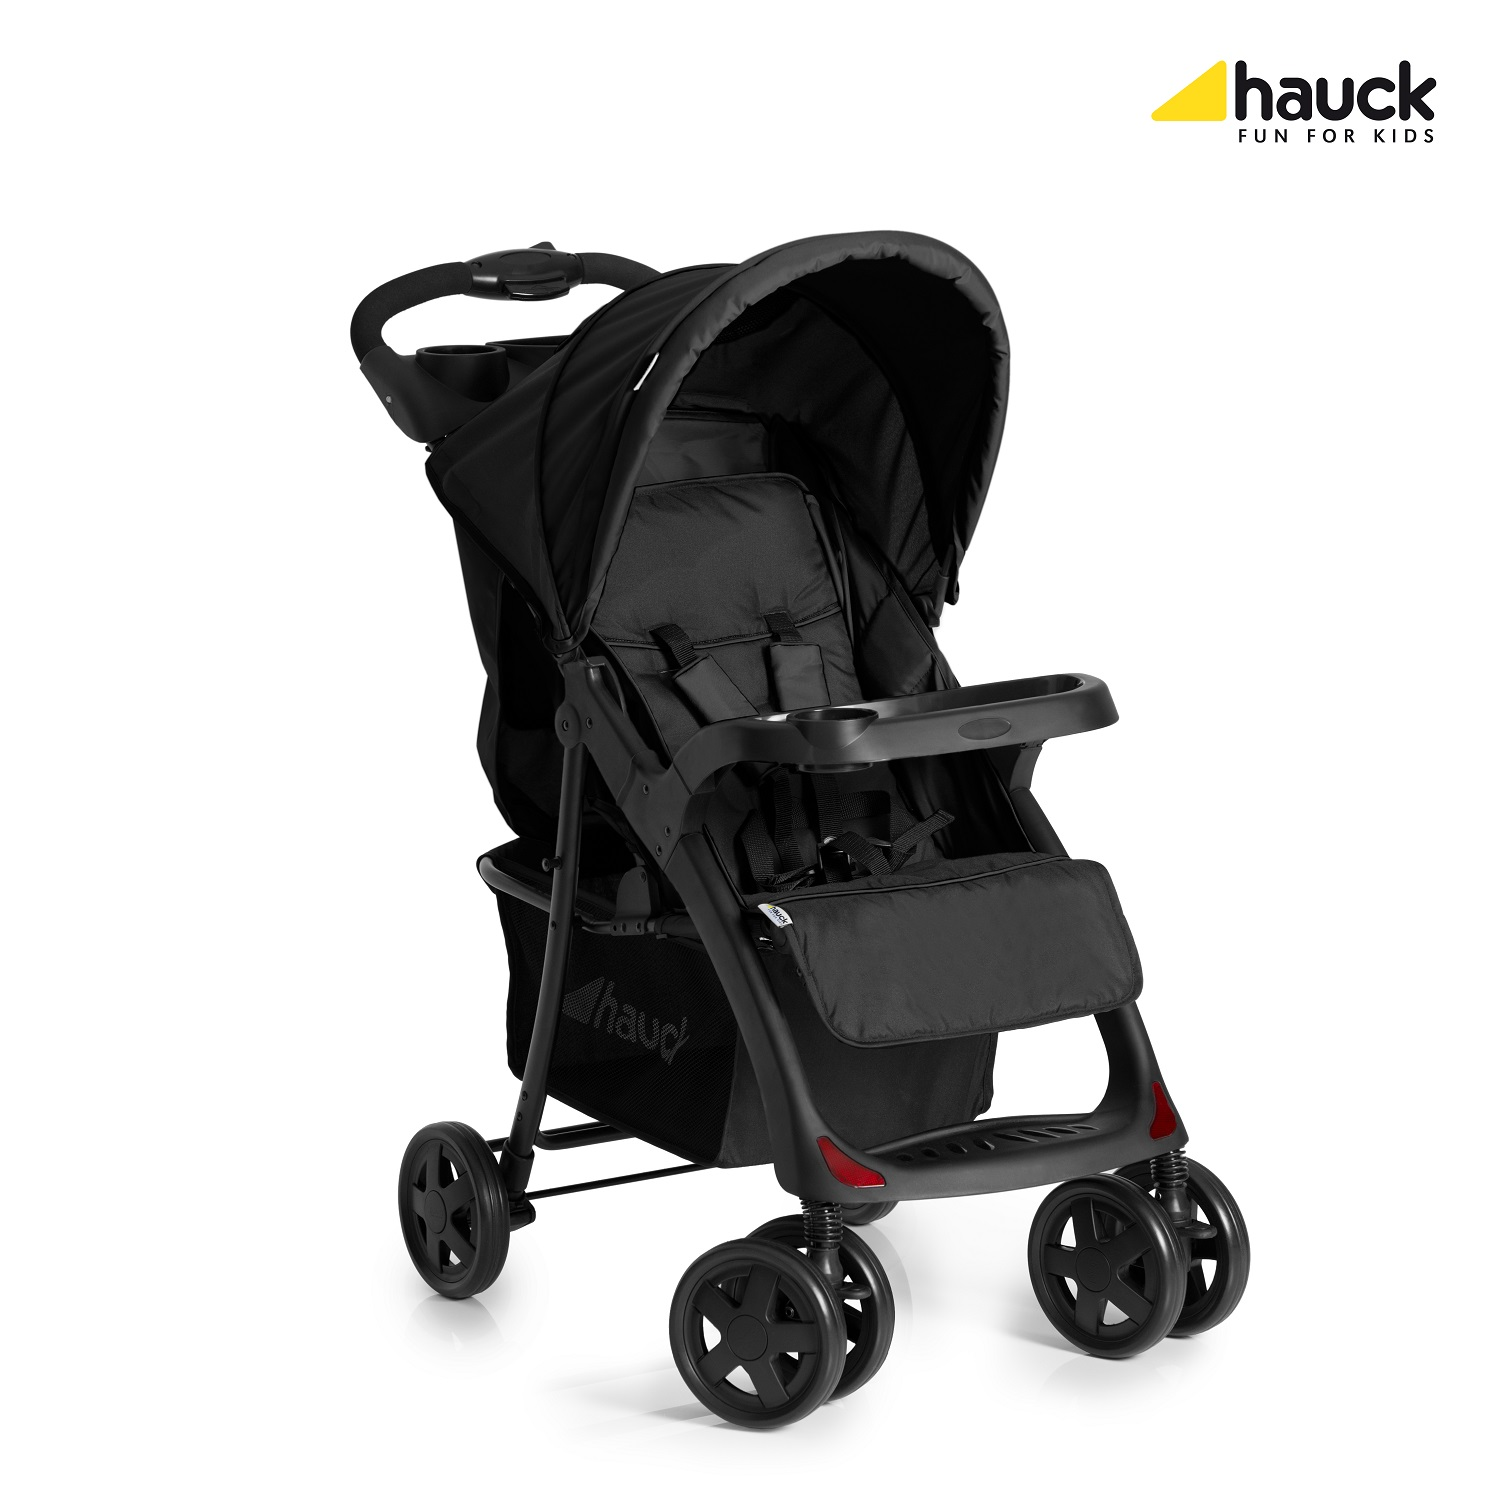 hauck pushchair neo ii buy at kidsroom strollers. Black Bedroom Furniture Sets. Home Design Ideas